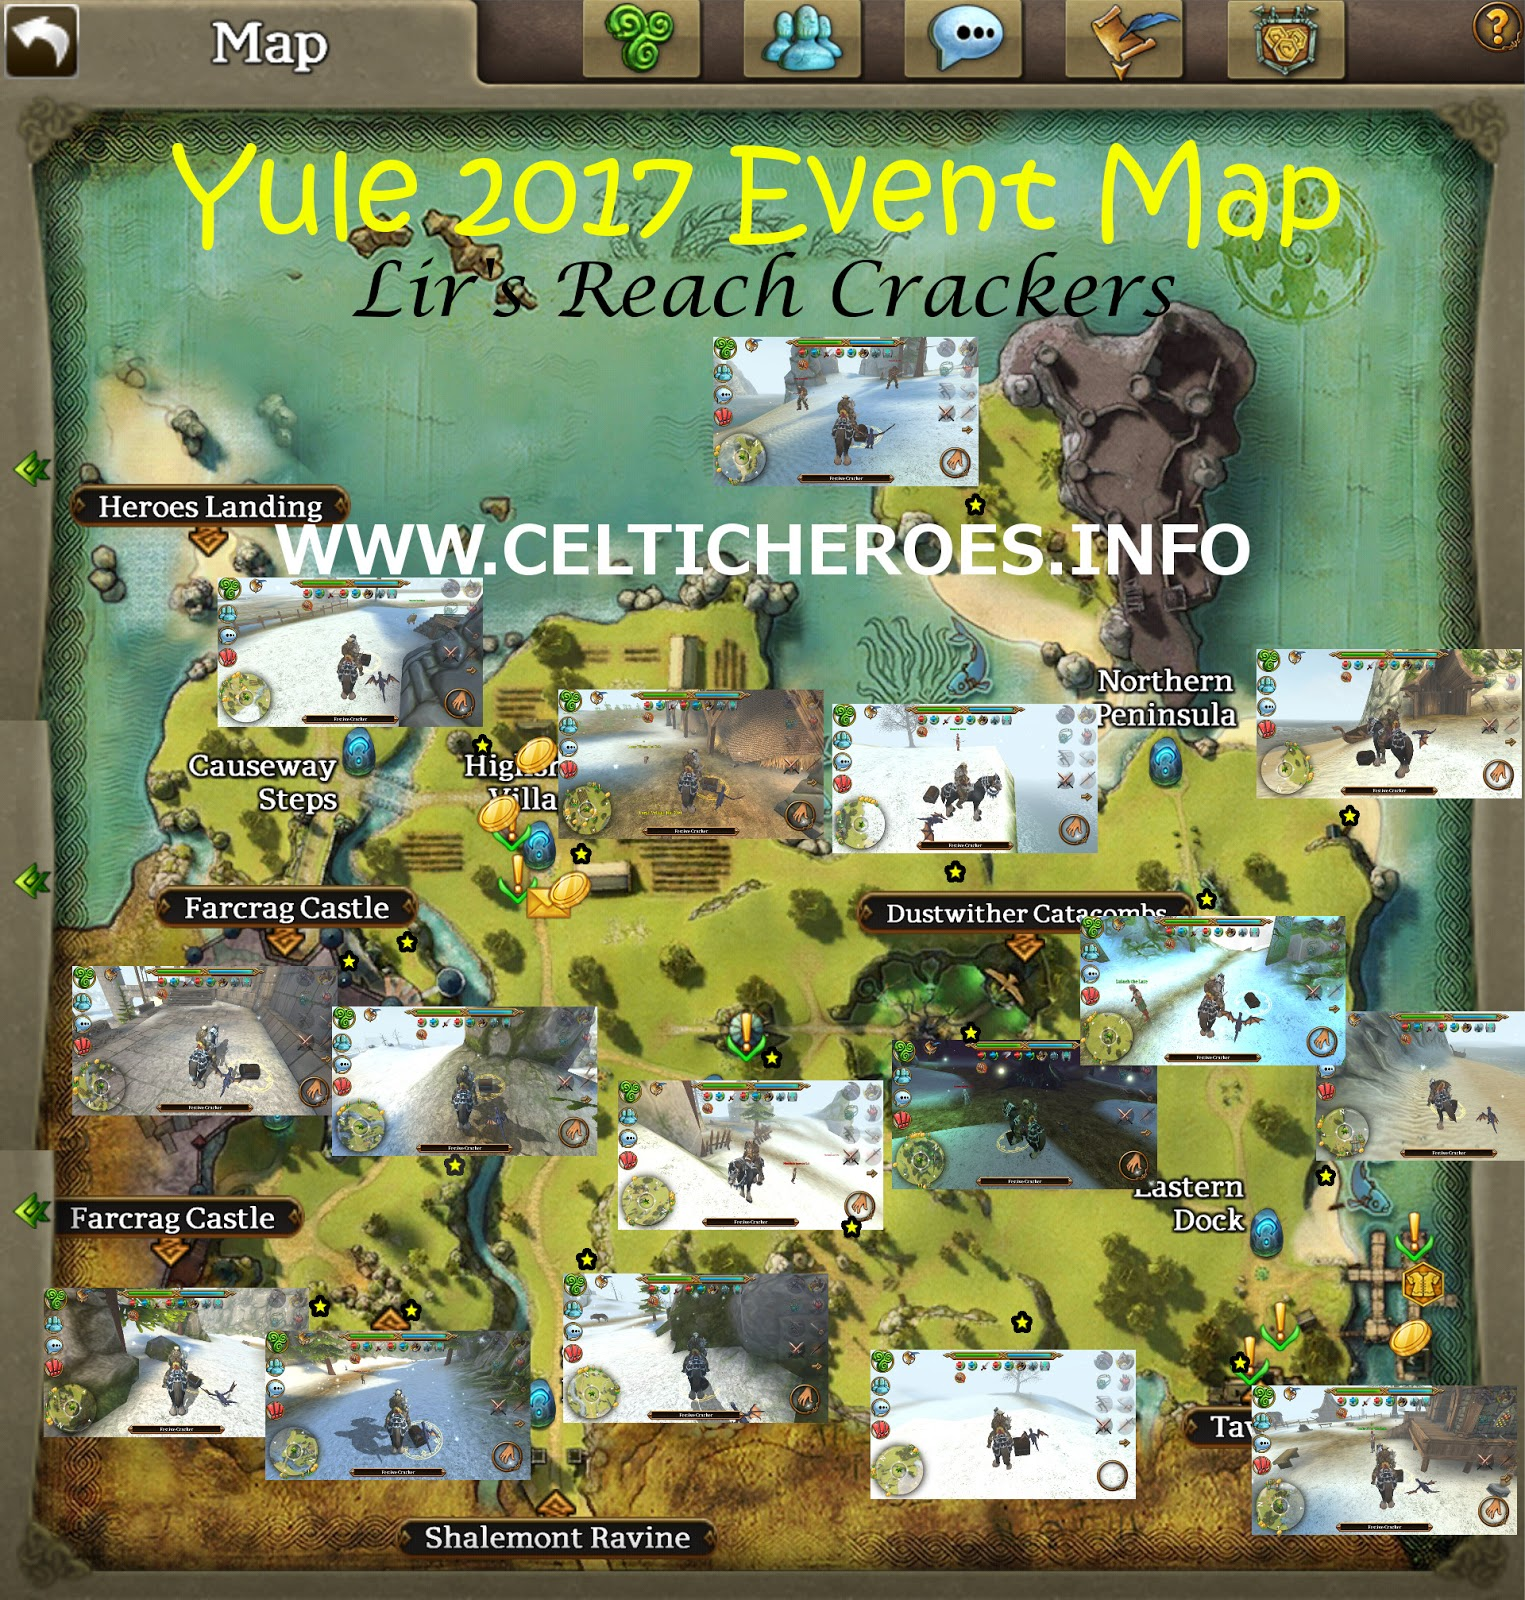 Yule 2017 Event Guide - Celtic Heroes Tavern